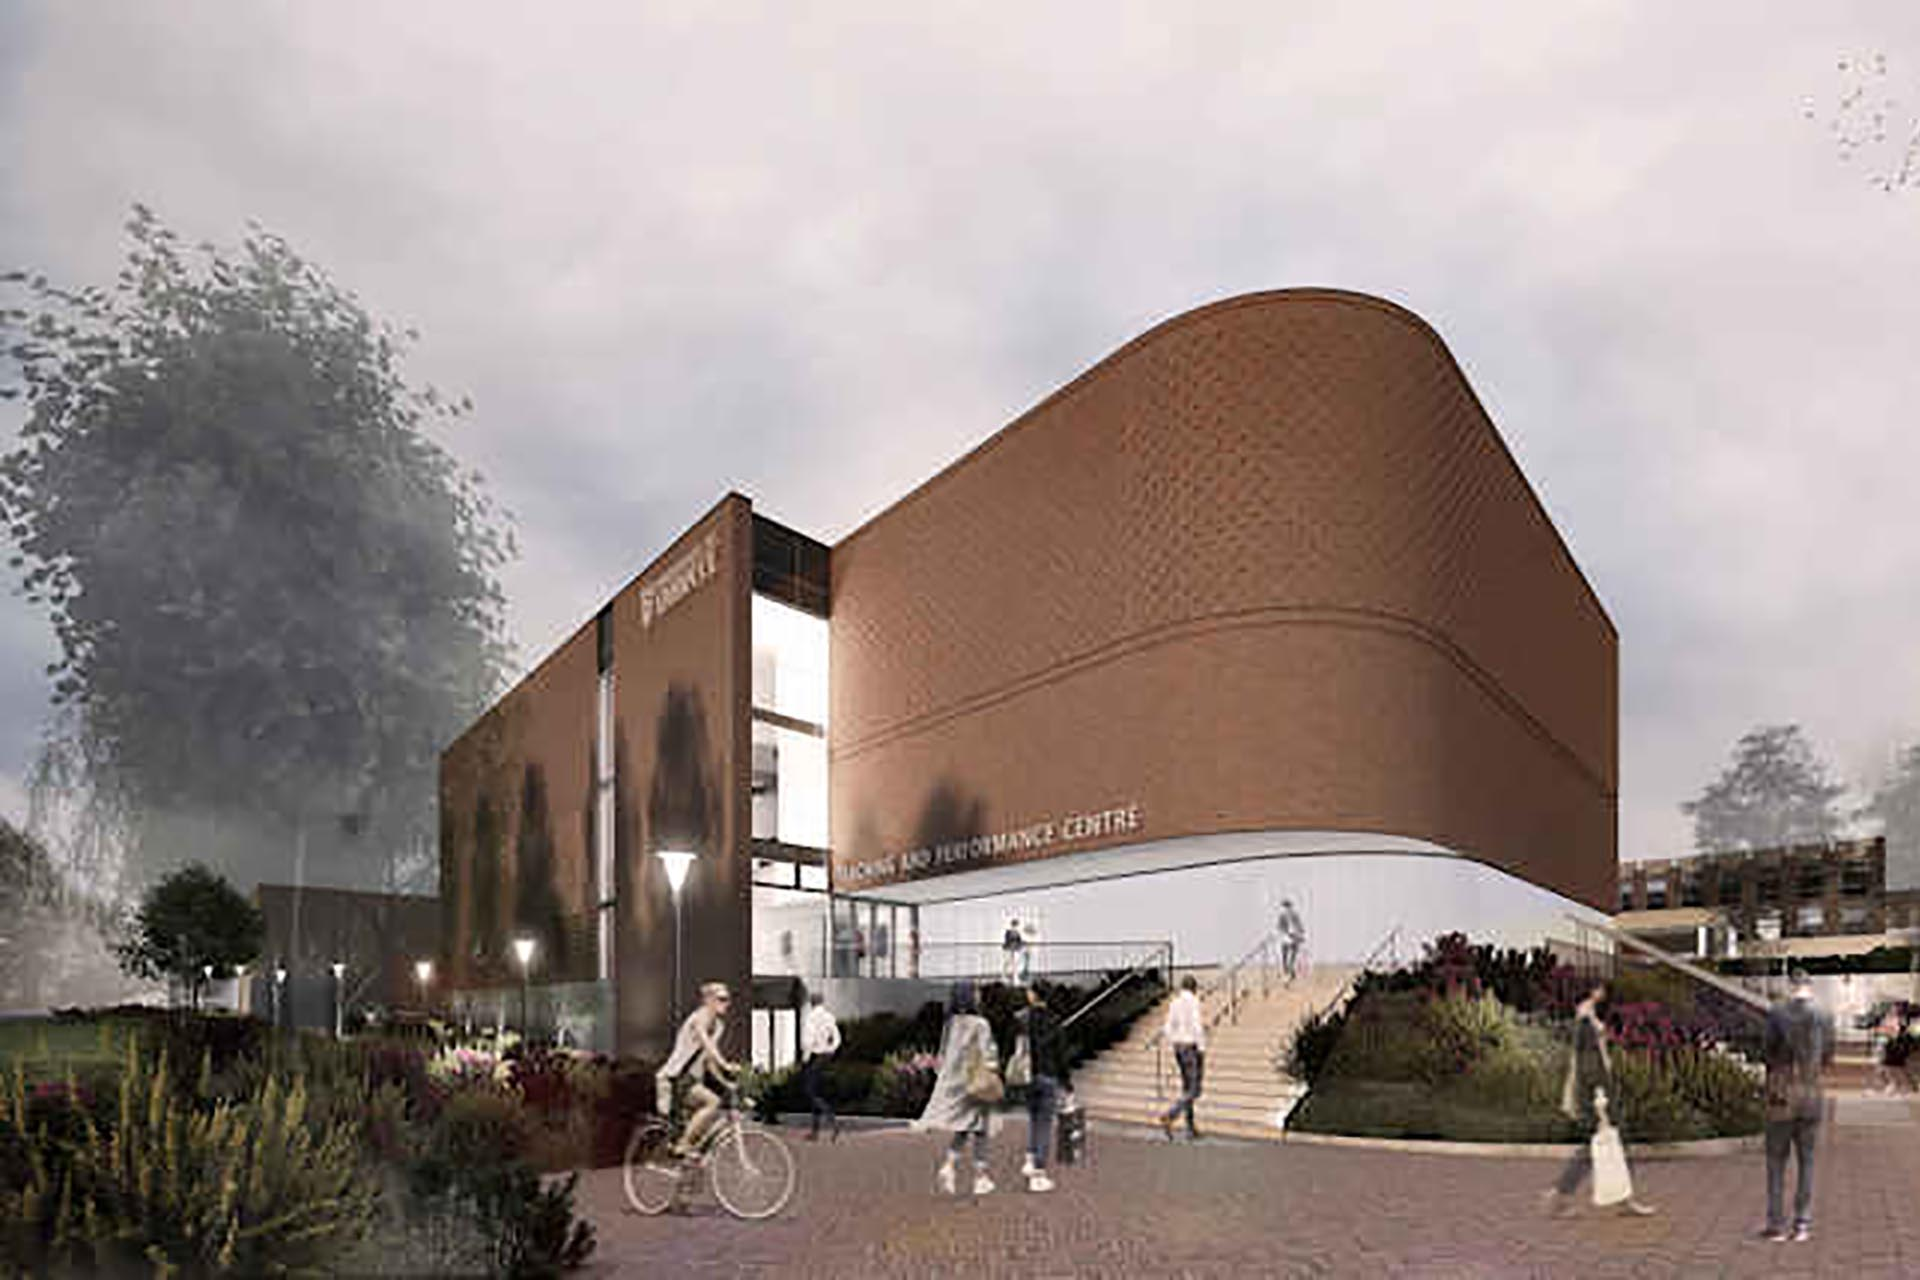 The teaching and performance centre opening 2021